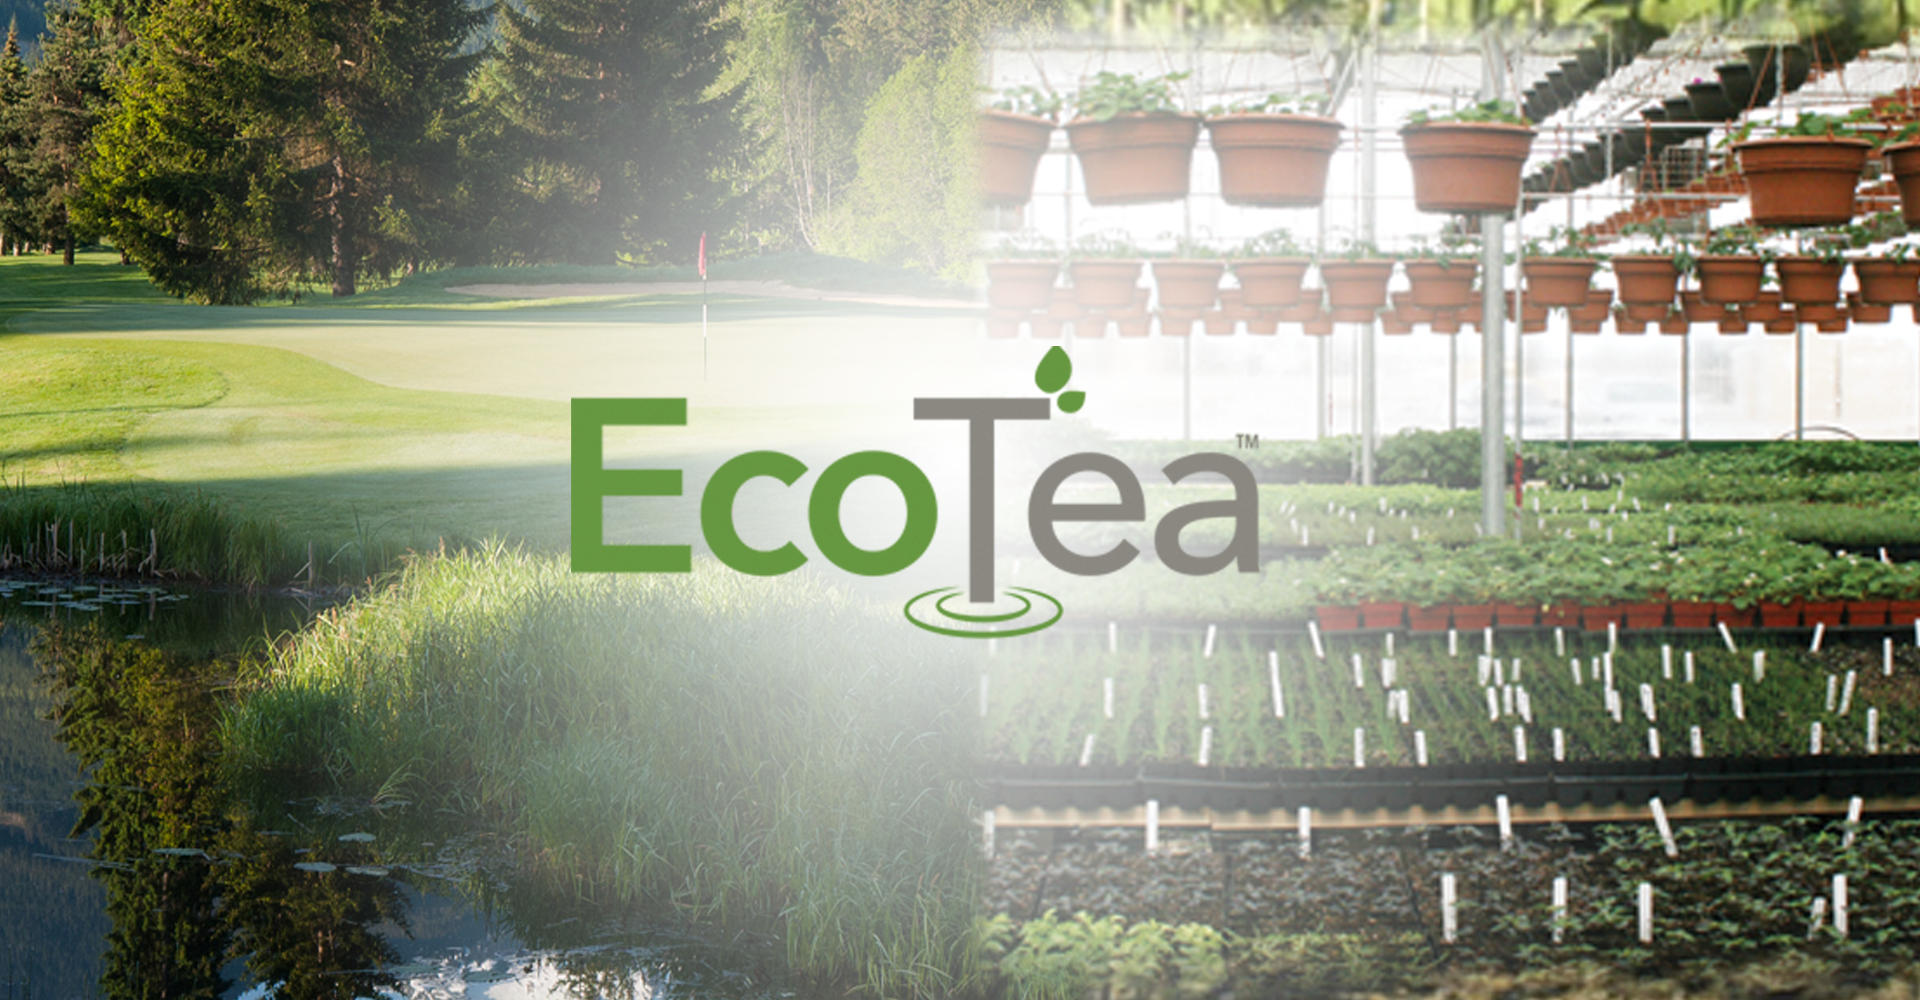 Eco-Tea will help decrease pathogen stree from bacteria, fungi, nematodes and some insects.